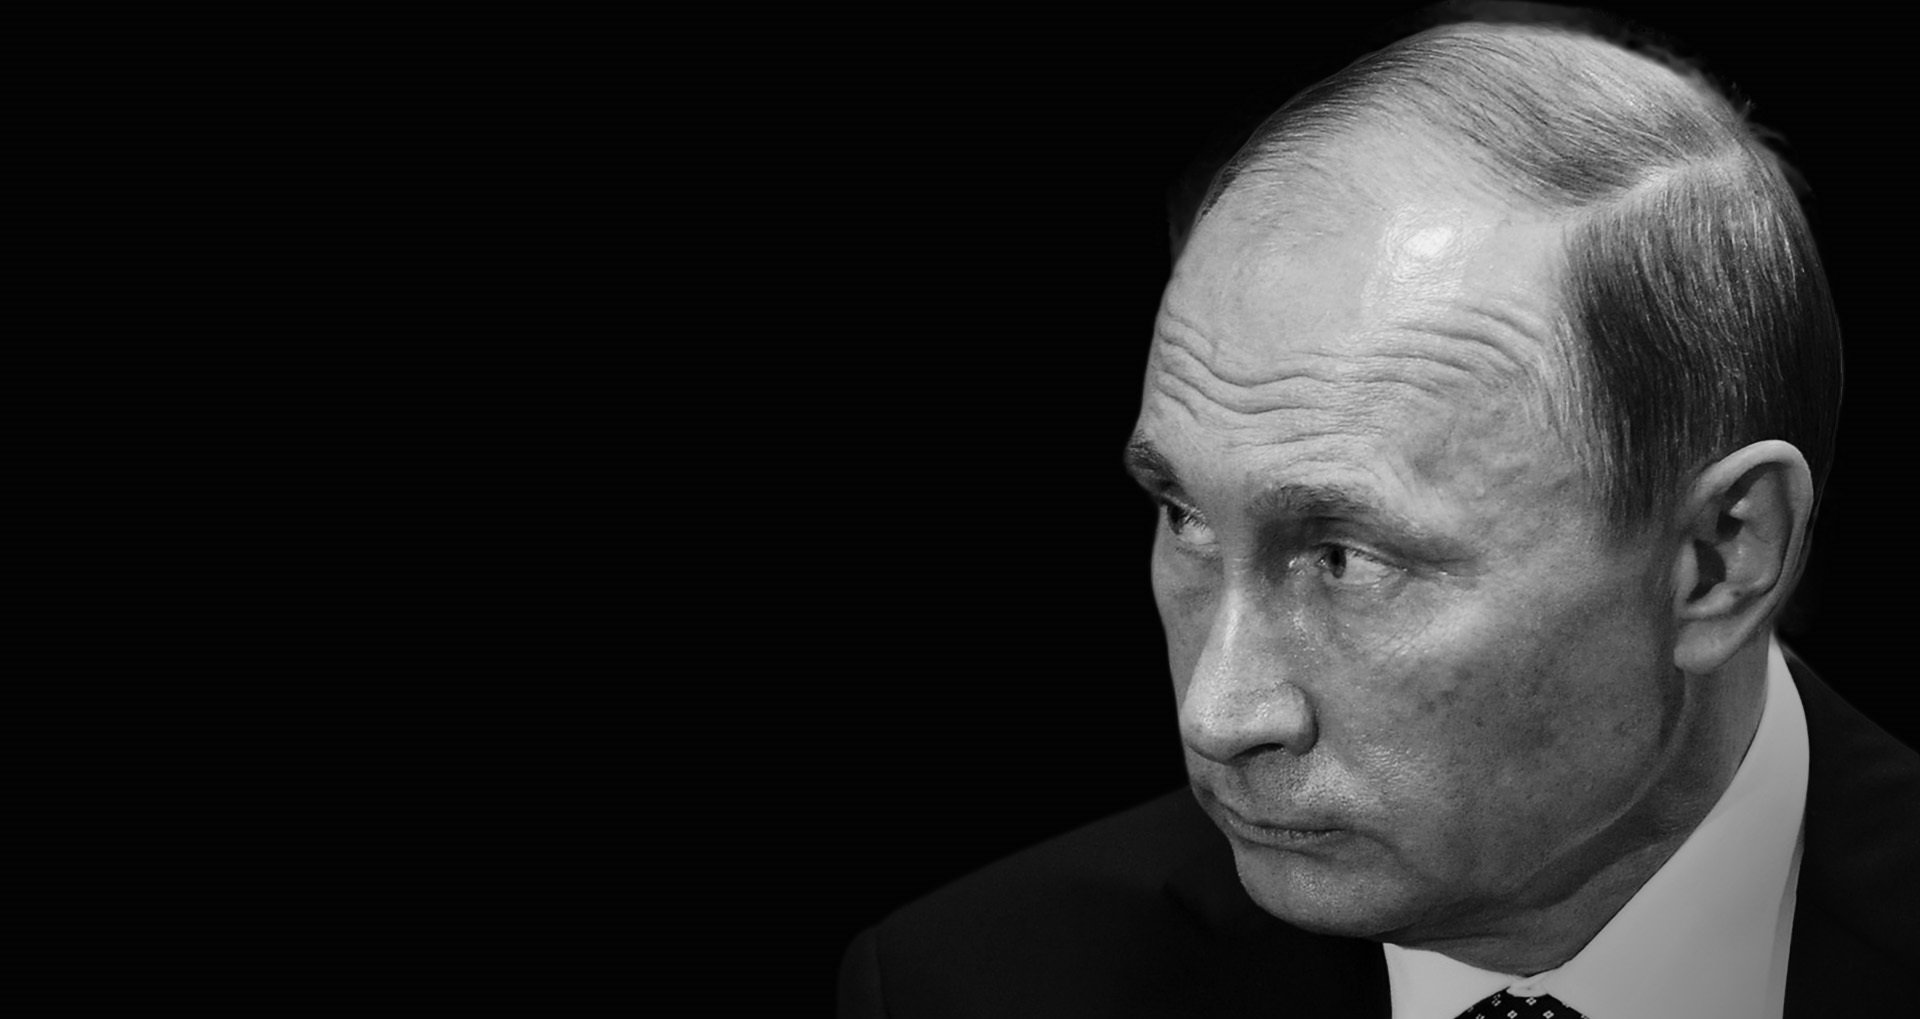 Vladimir Putin Wallpapers HD Backgrounds Of Your Choice 1920x1019